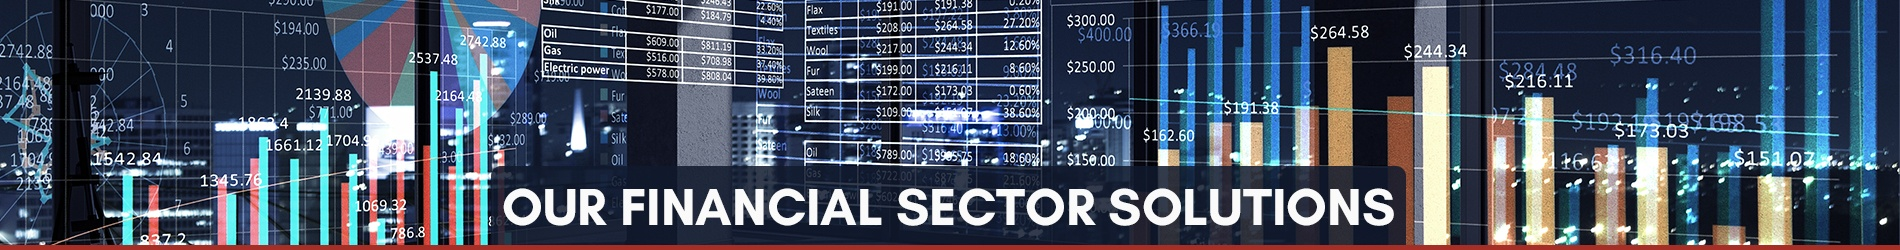 BSP_Industry_Finance_Solutions_Header.jpg